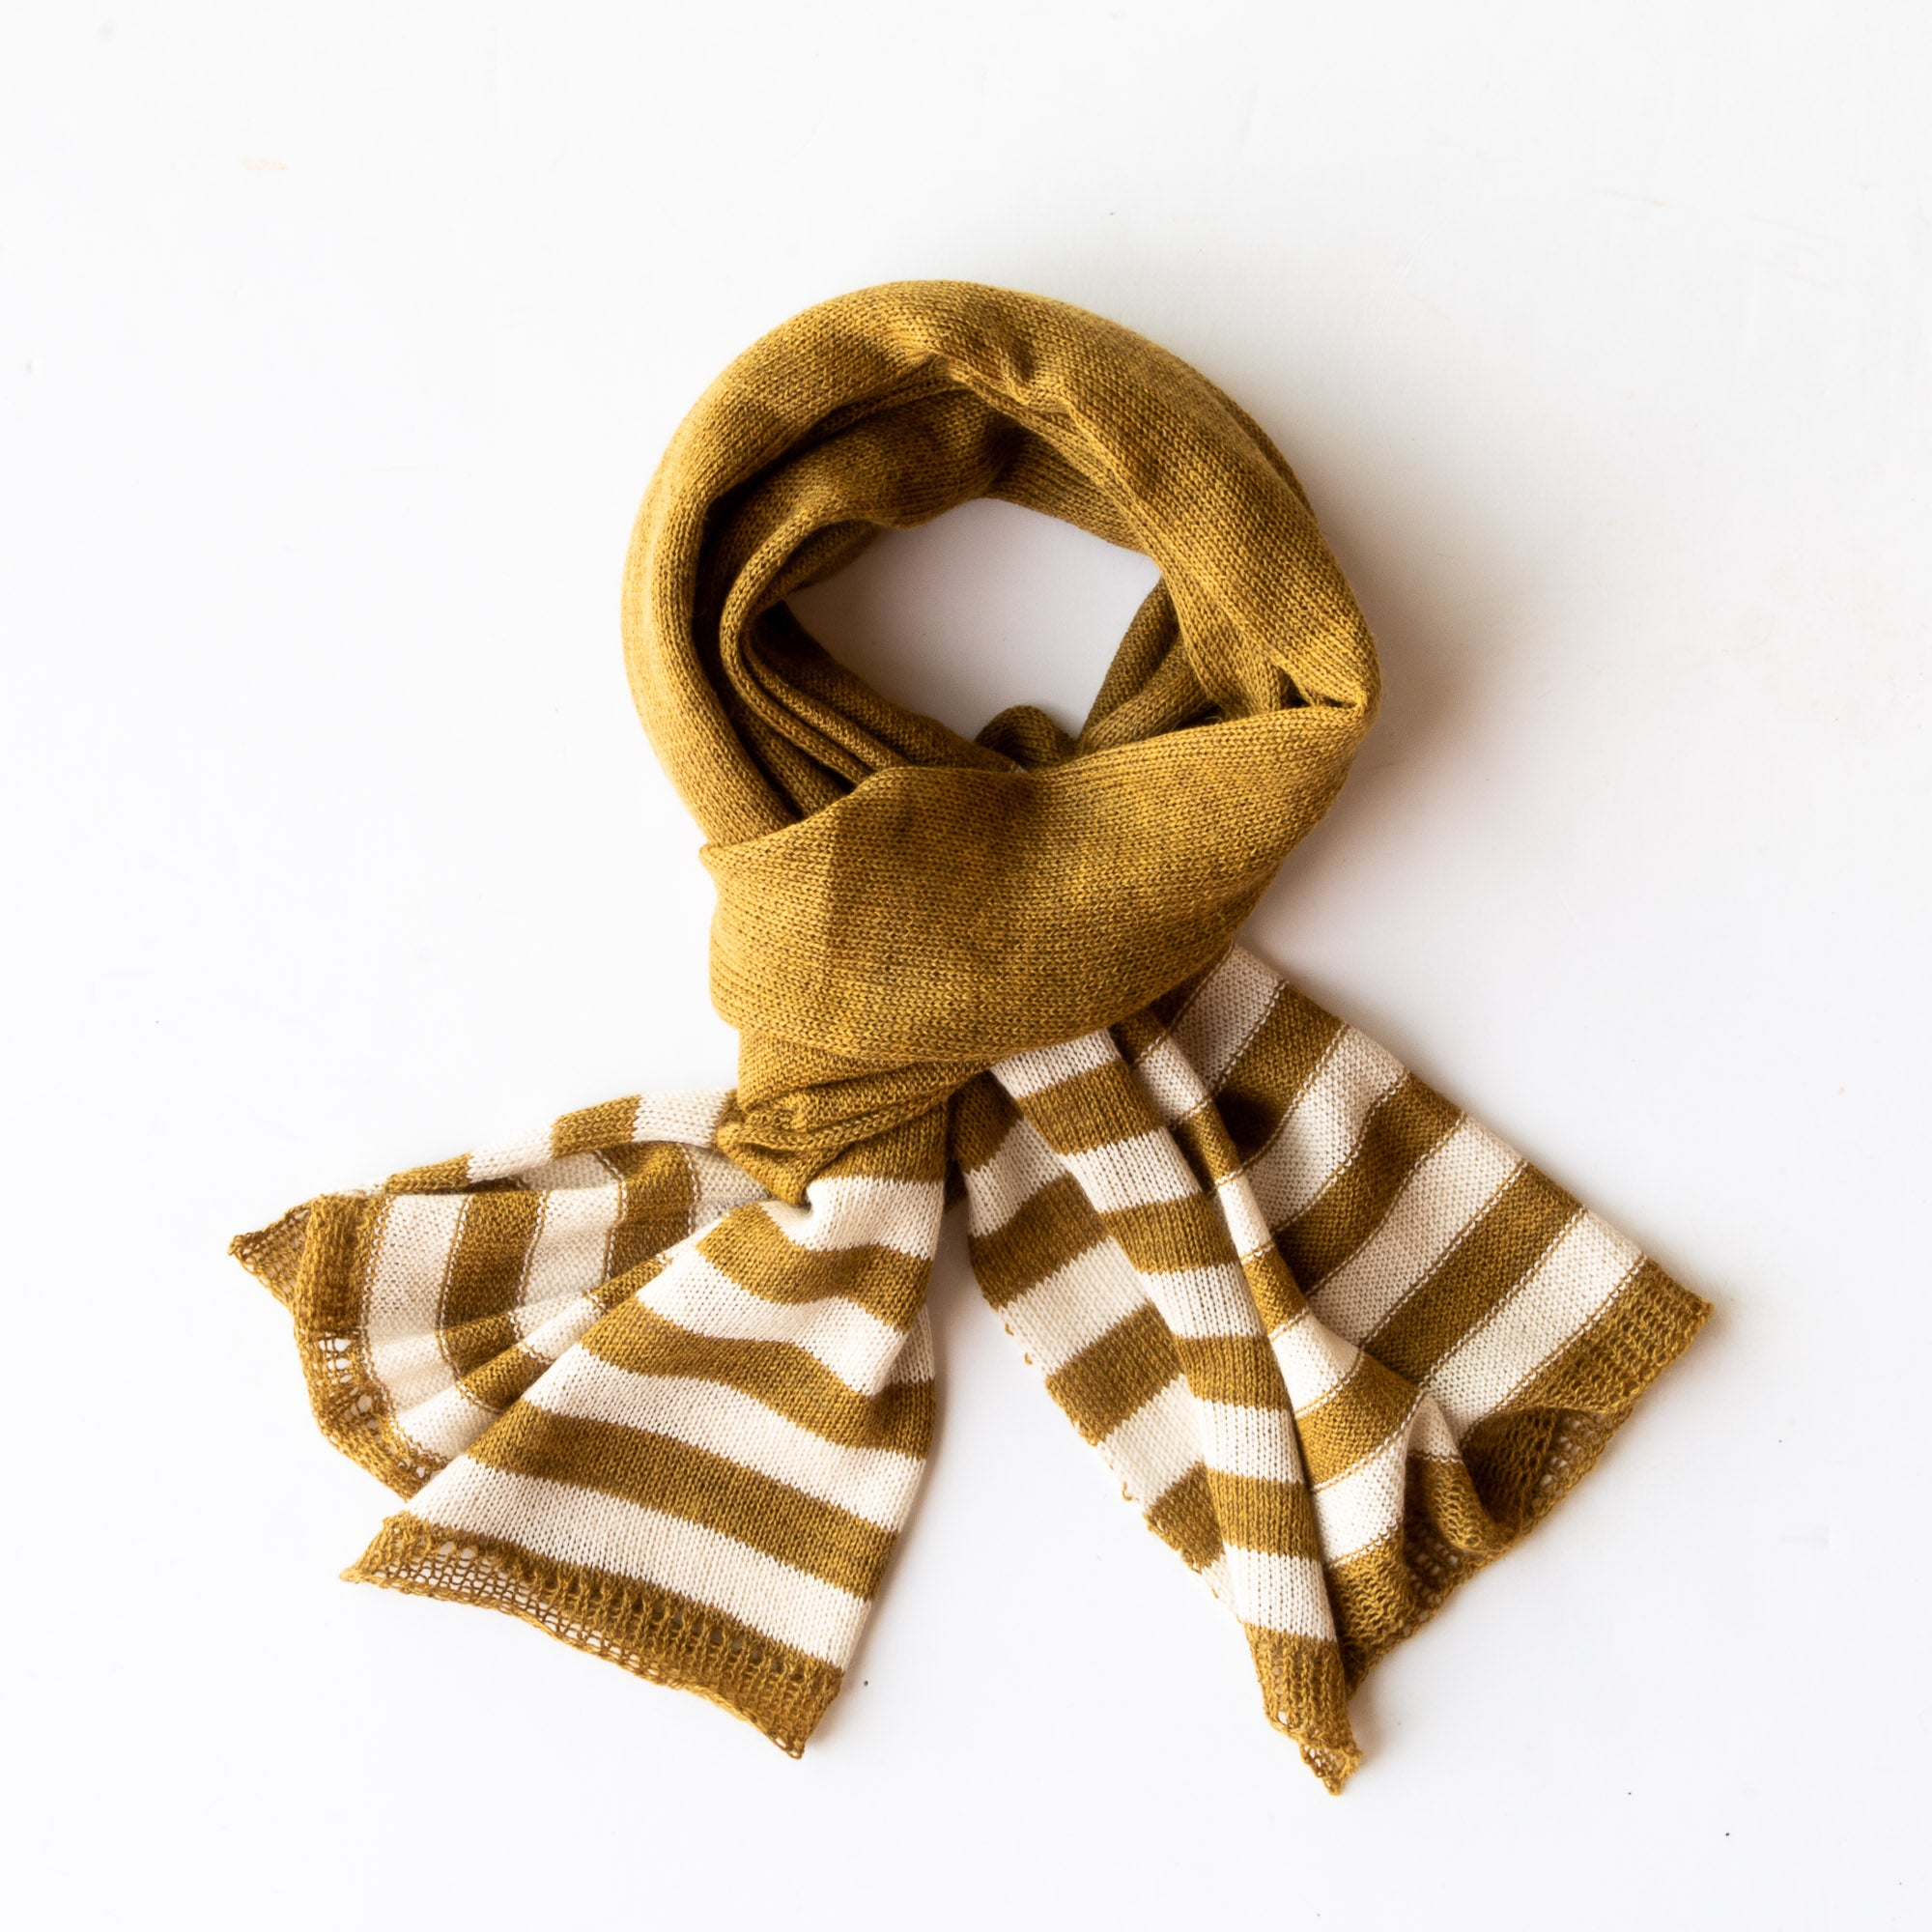 Top View - Mustard Handmade Unisex Alpaca Wool Fiber Striped Scarf / Shawl - Sold by Chic & Basta